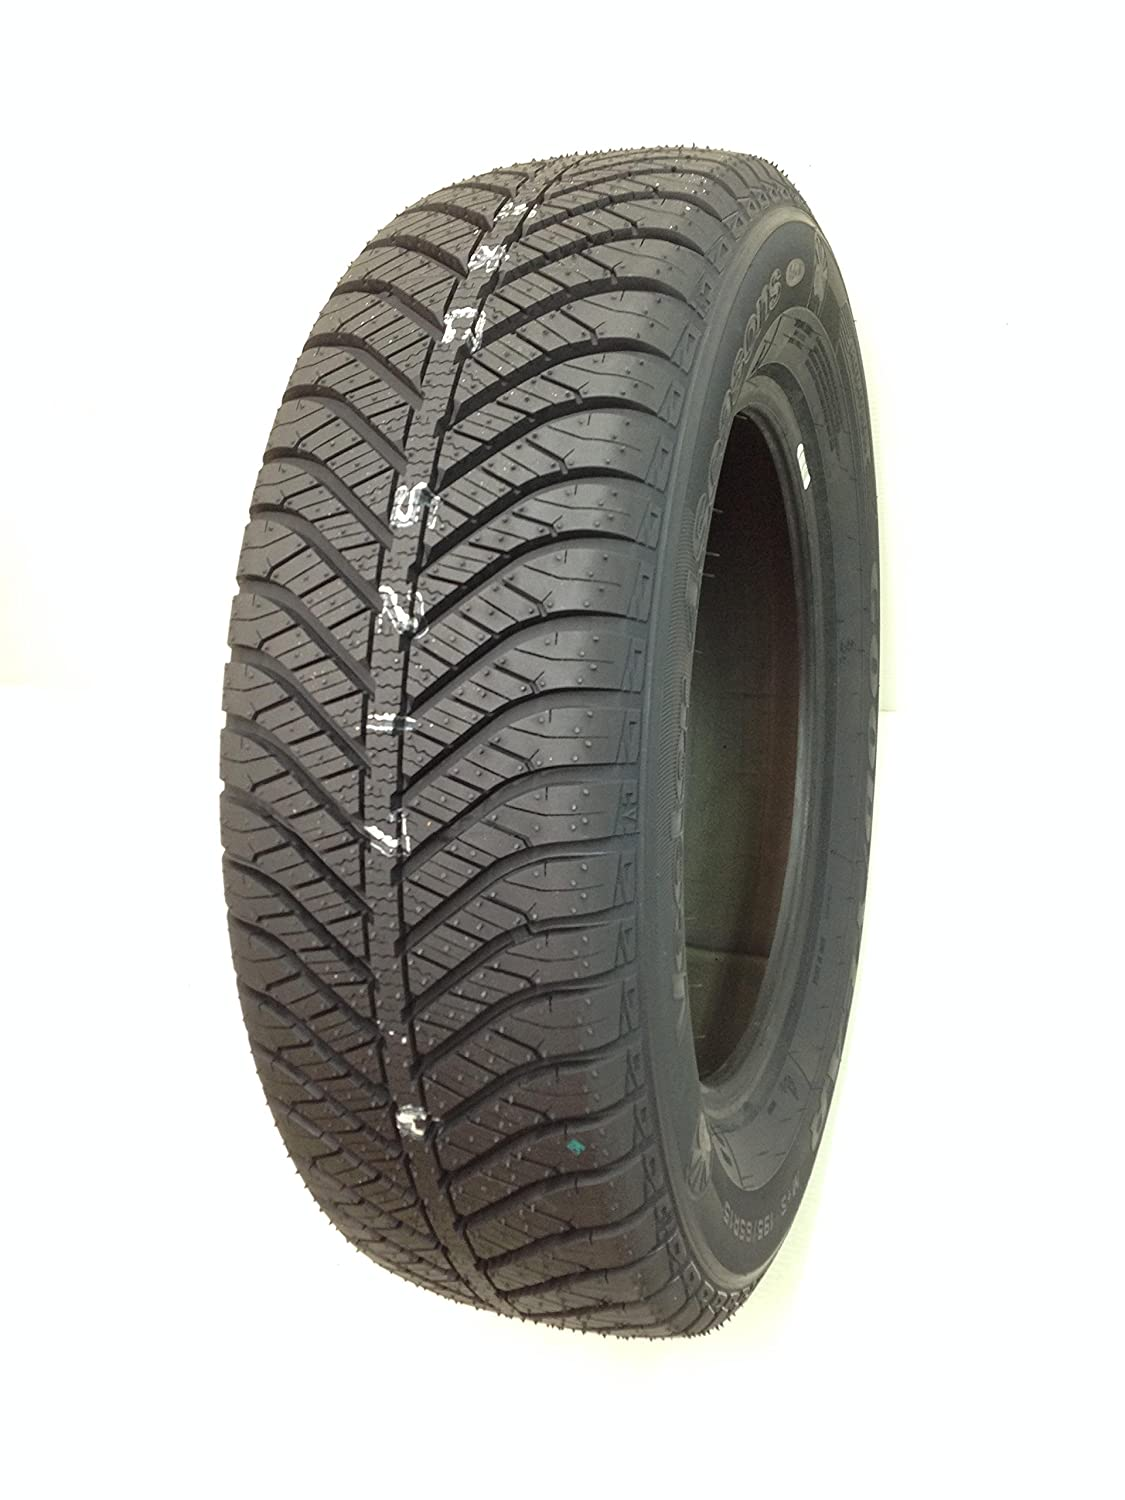 GOODYEAR(グッドイヤー) オールシーズン Vector 4Seasons Hybrid 185/70R14 88H B01J50NY4O